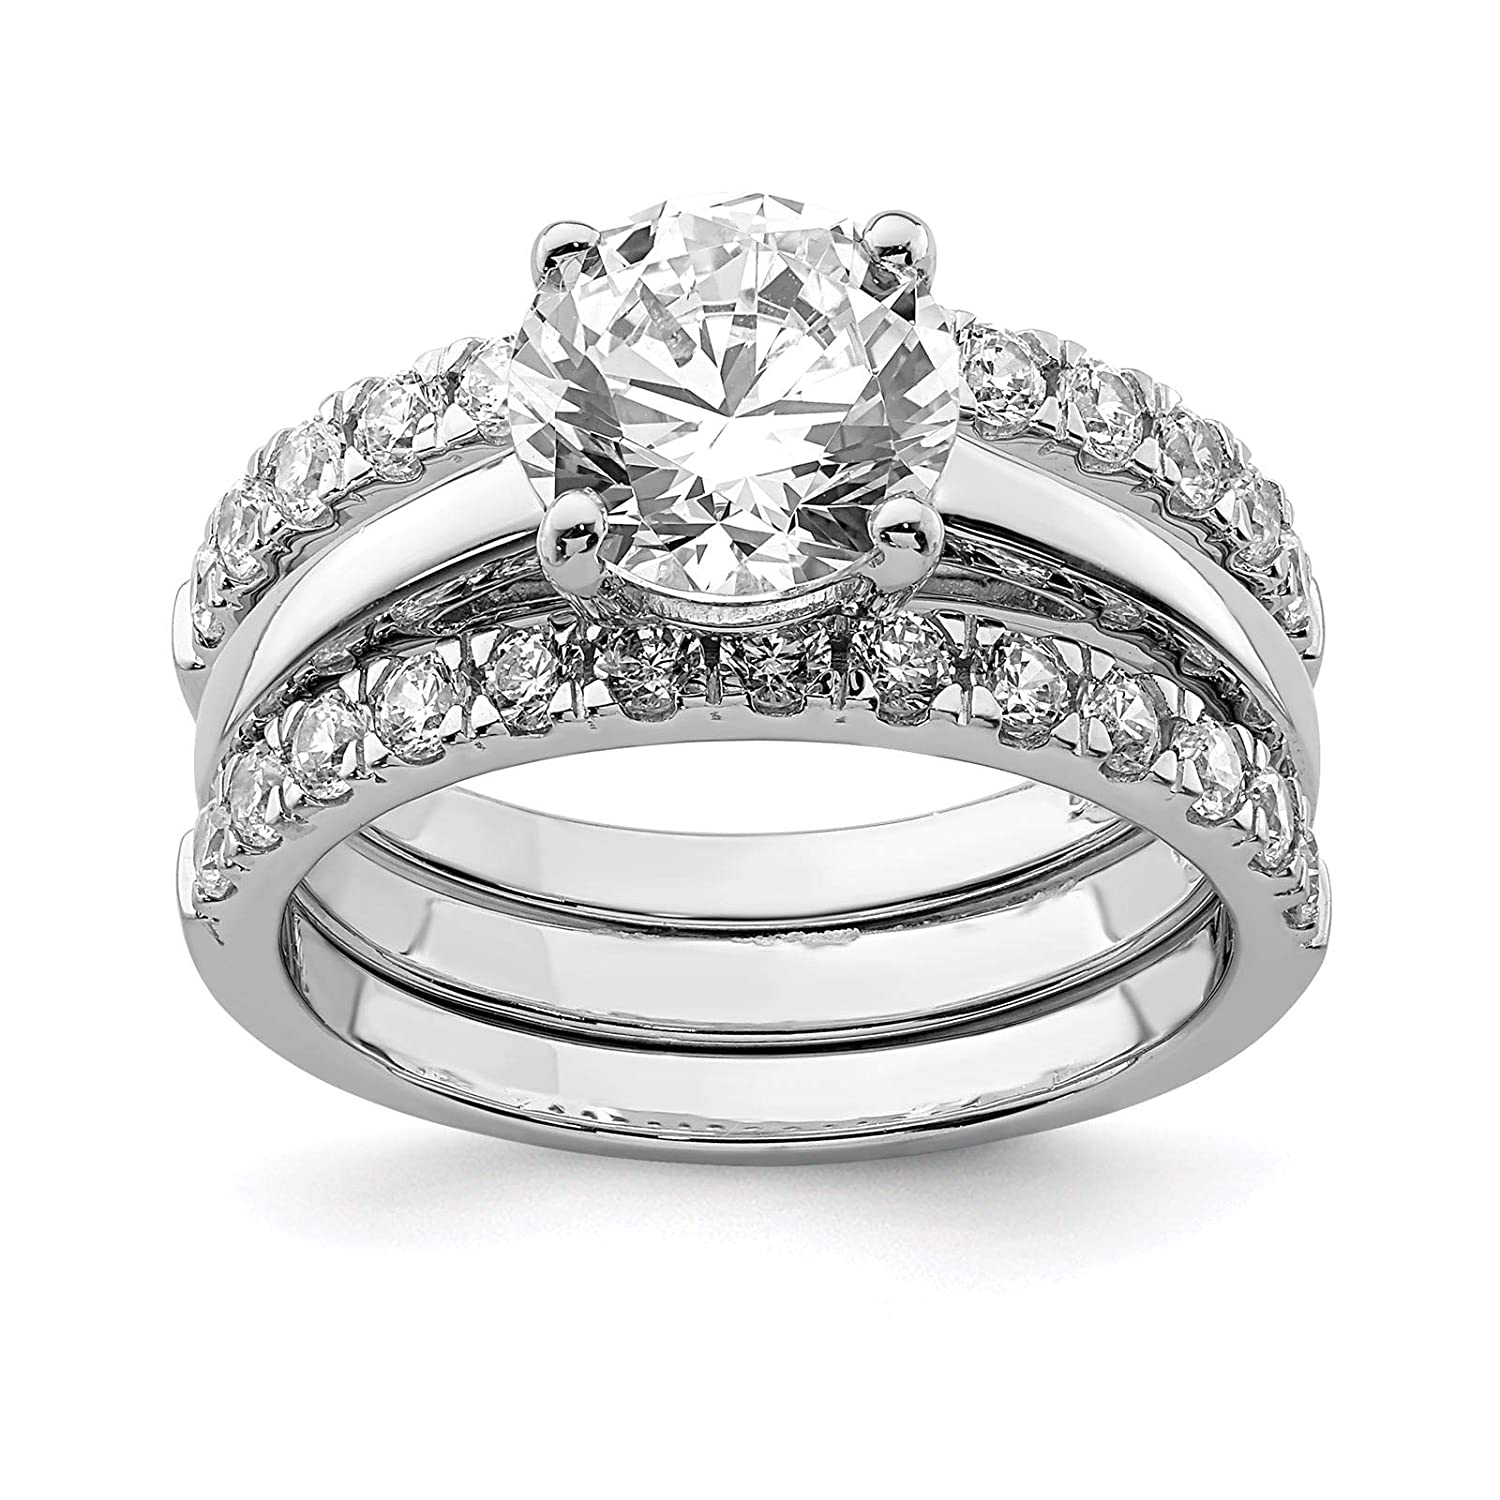 925 Sterling Silver Rhodium-plated Polished 8mm CZ Bridal Engagement Ring 3 Piece Set Size 6-8